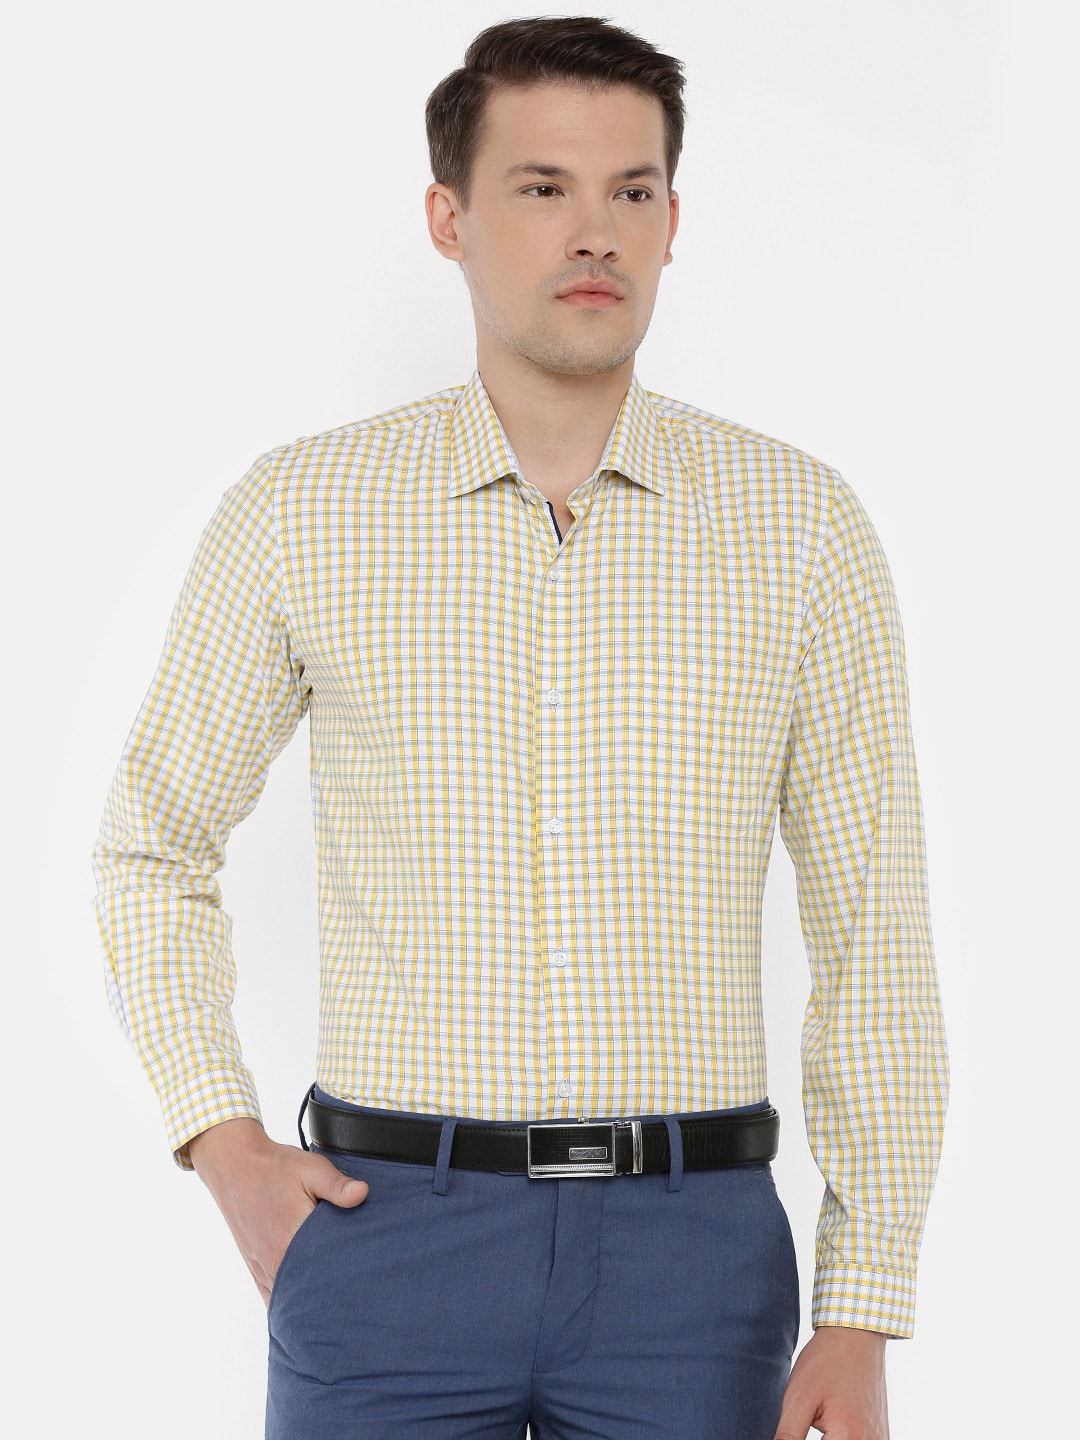 d5b5c4d7 Can I Wear A Blue And White Striped Shirt With Black Pants - raveitsafe